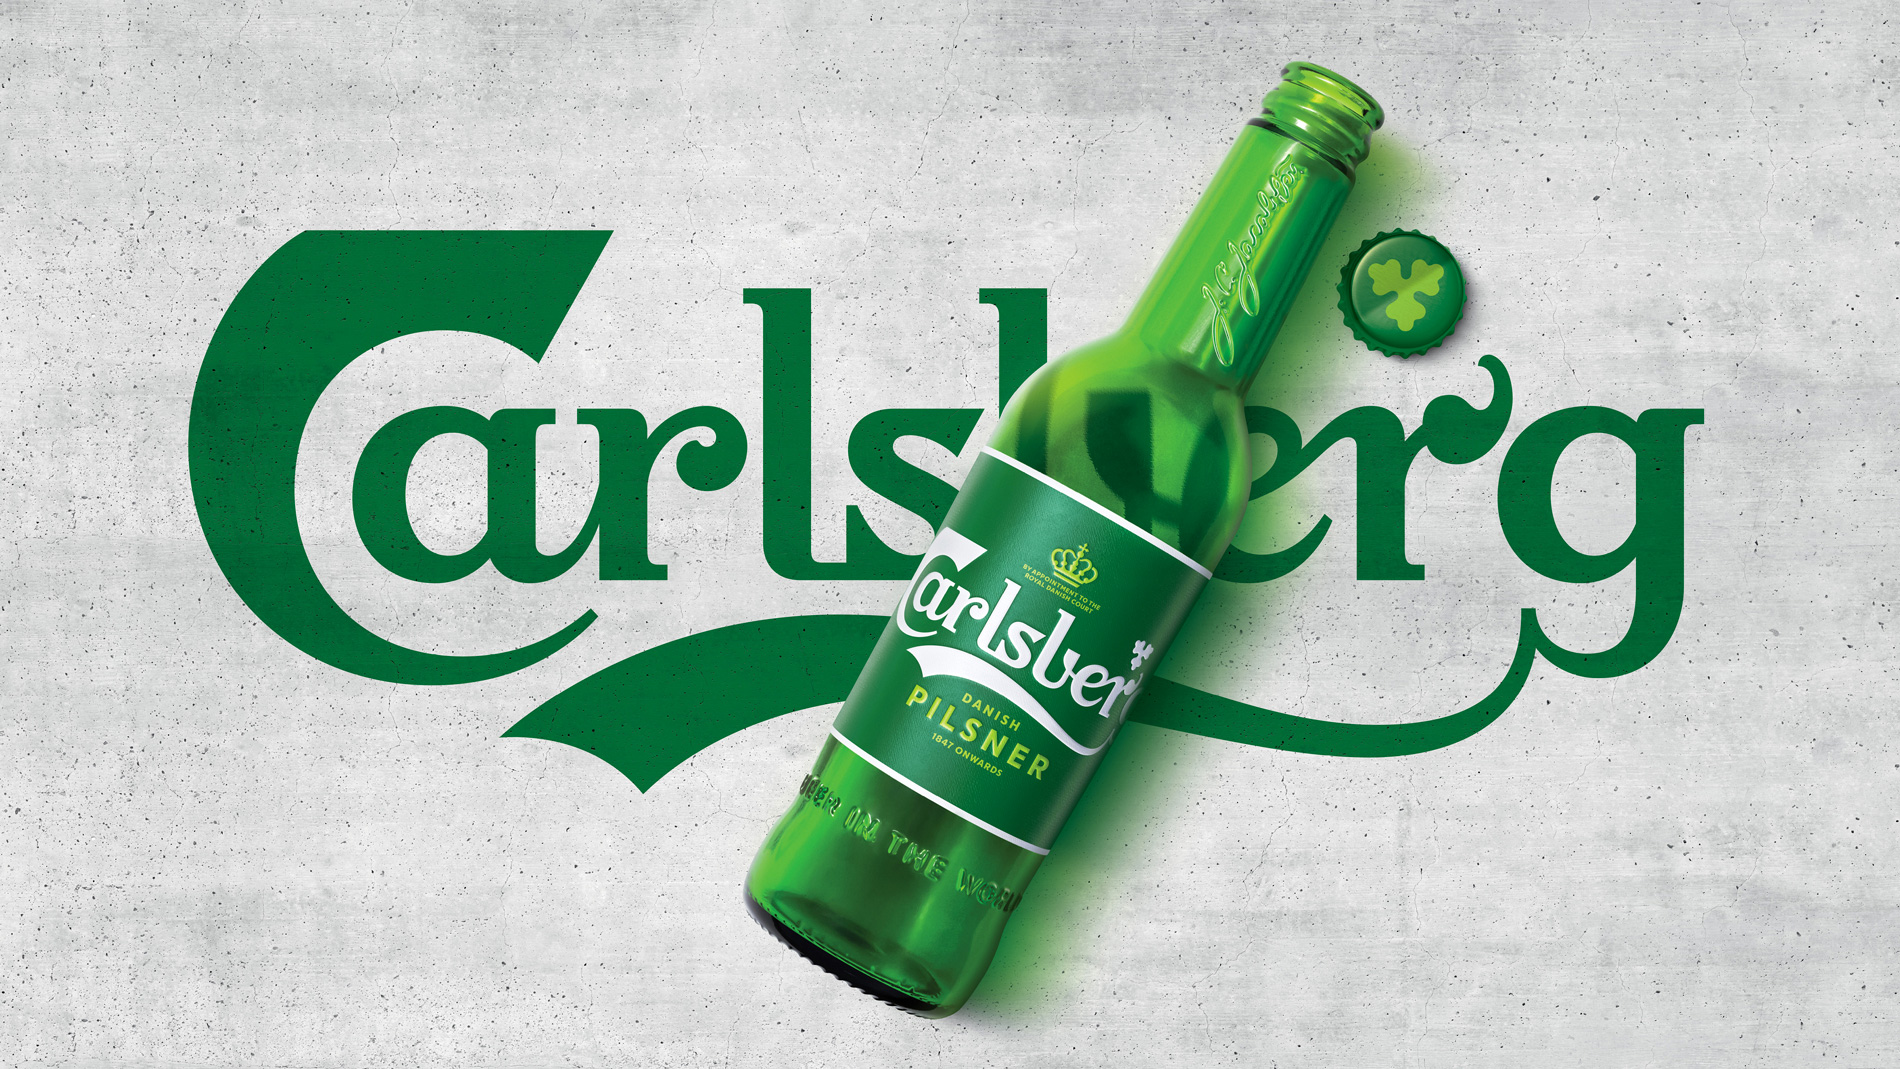 Carlsberg. Probably the best logo in the world?